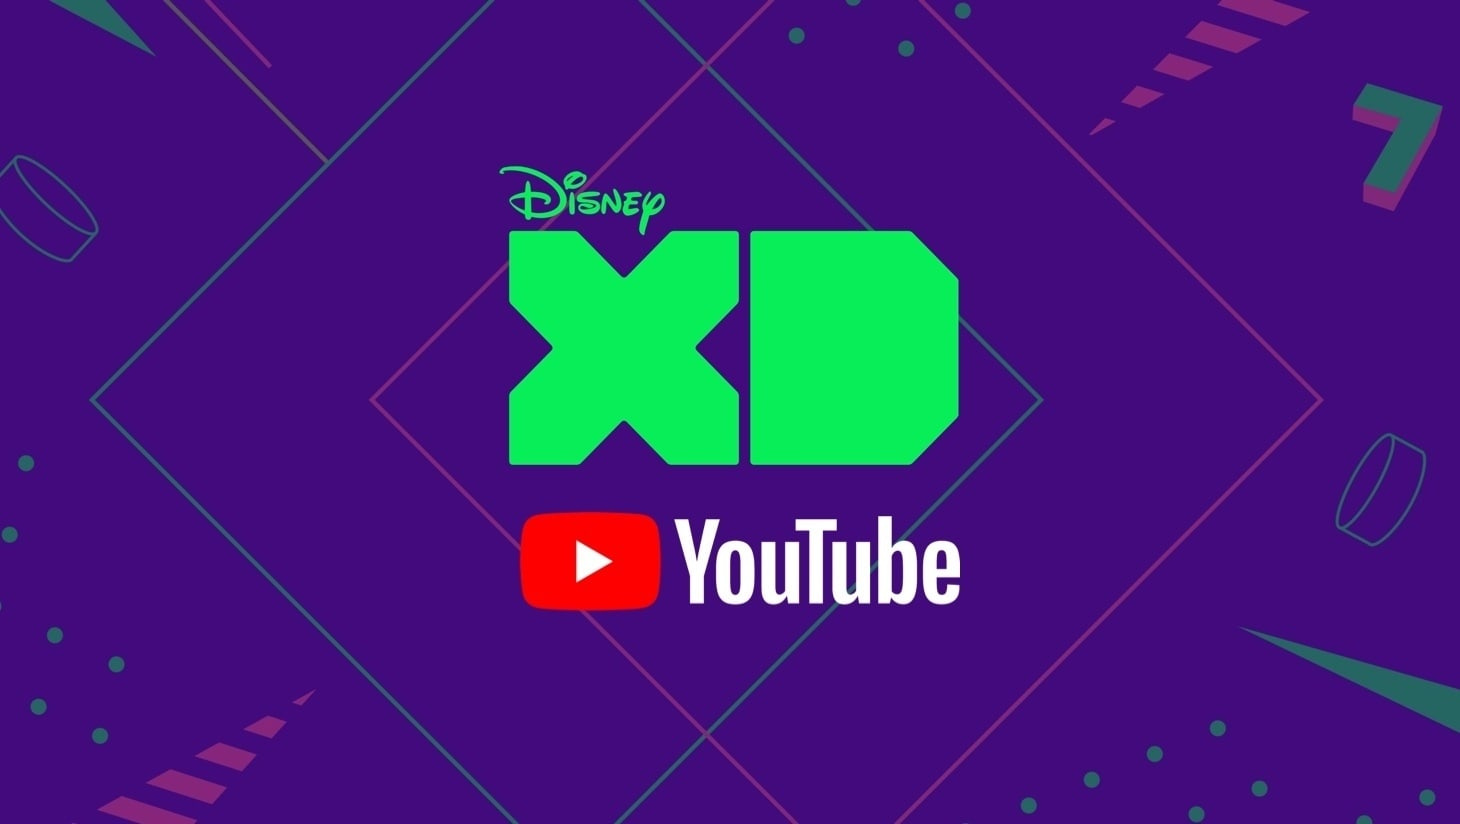 The Disney XD and the YouTube logos on a dark purple background